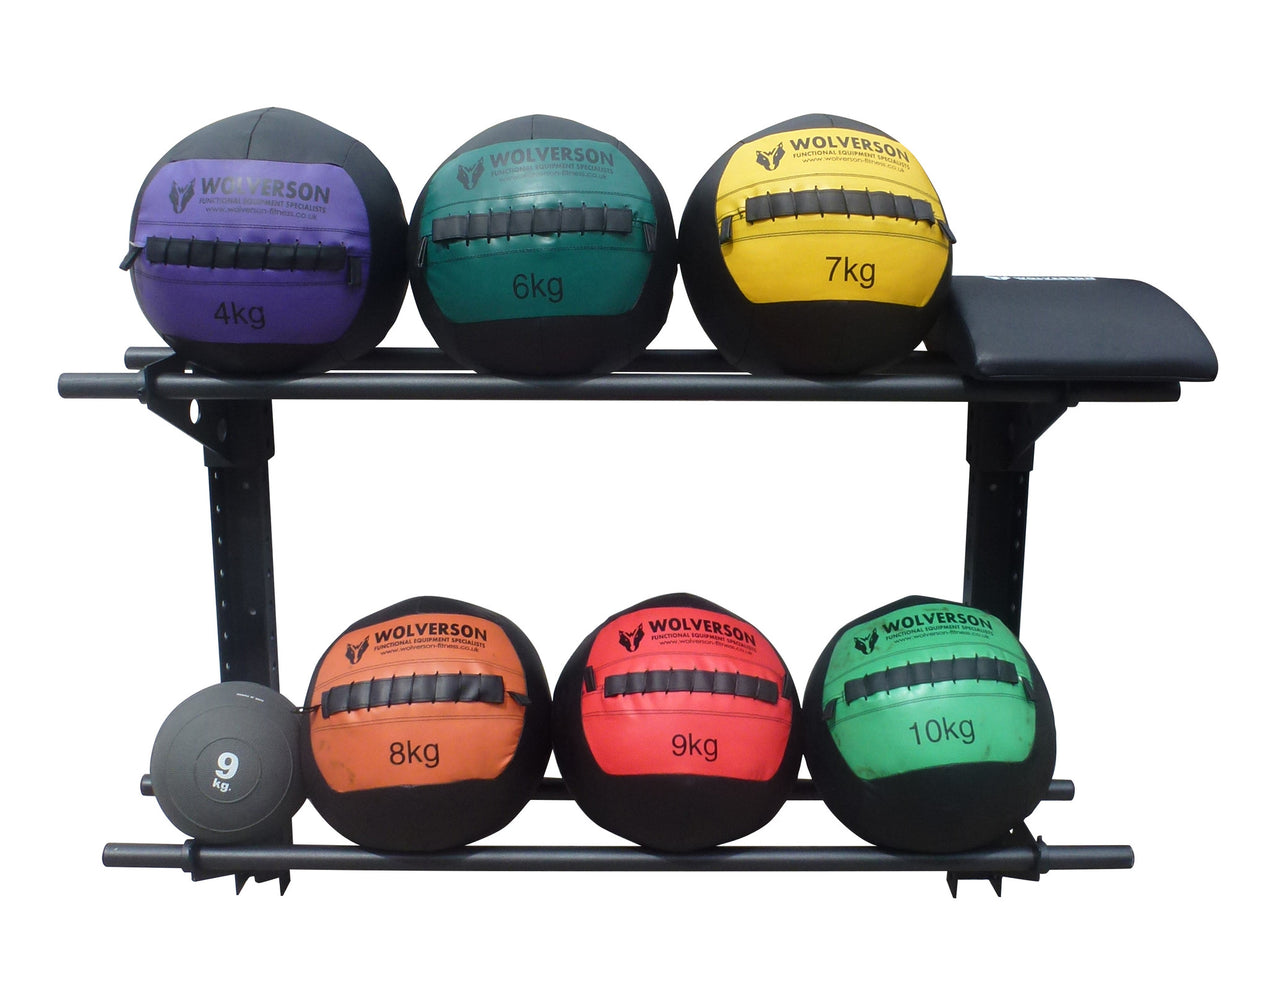 Wall Mounted Wall Ball Storage Racks - Wolverson Fitness